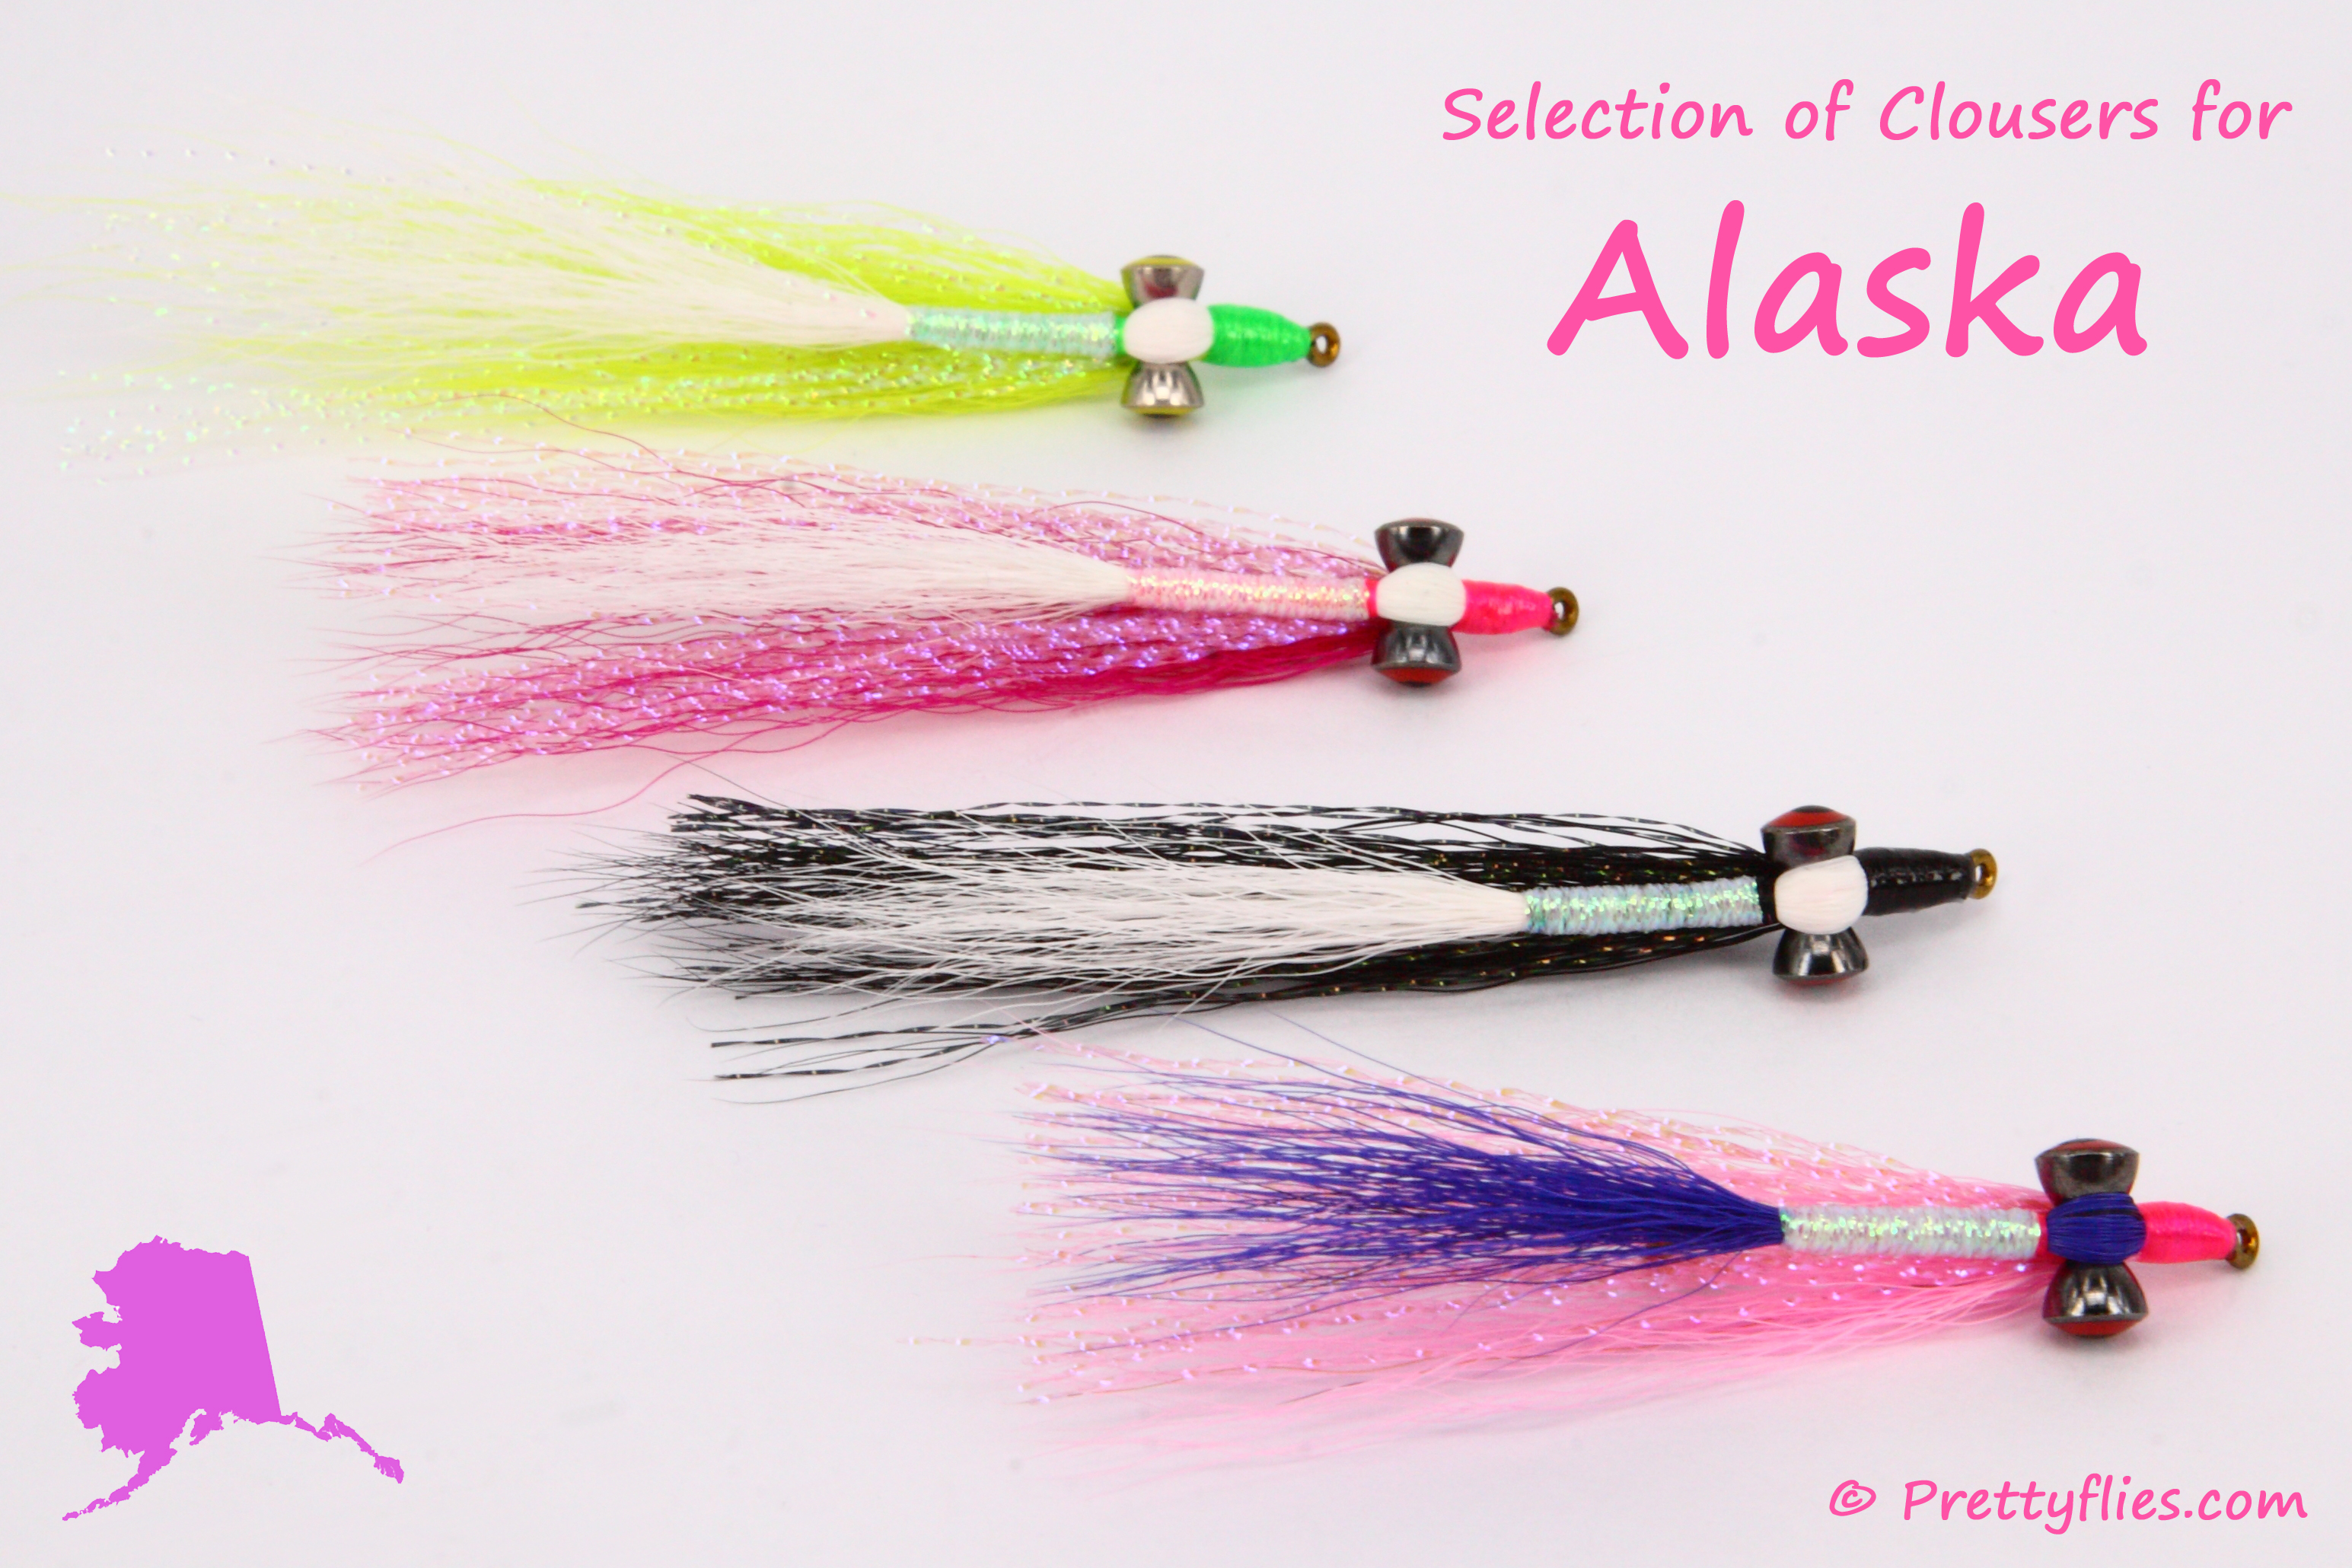 Selection of Clousers for Alaska.jpg